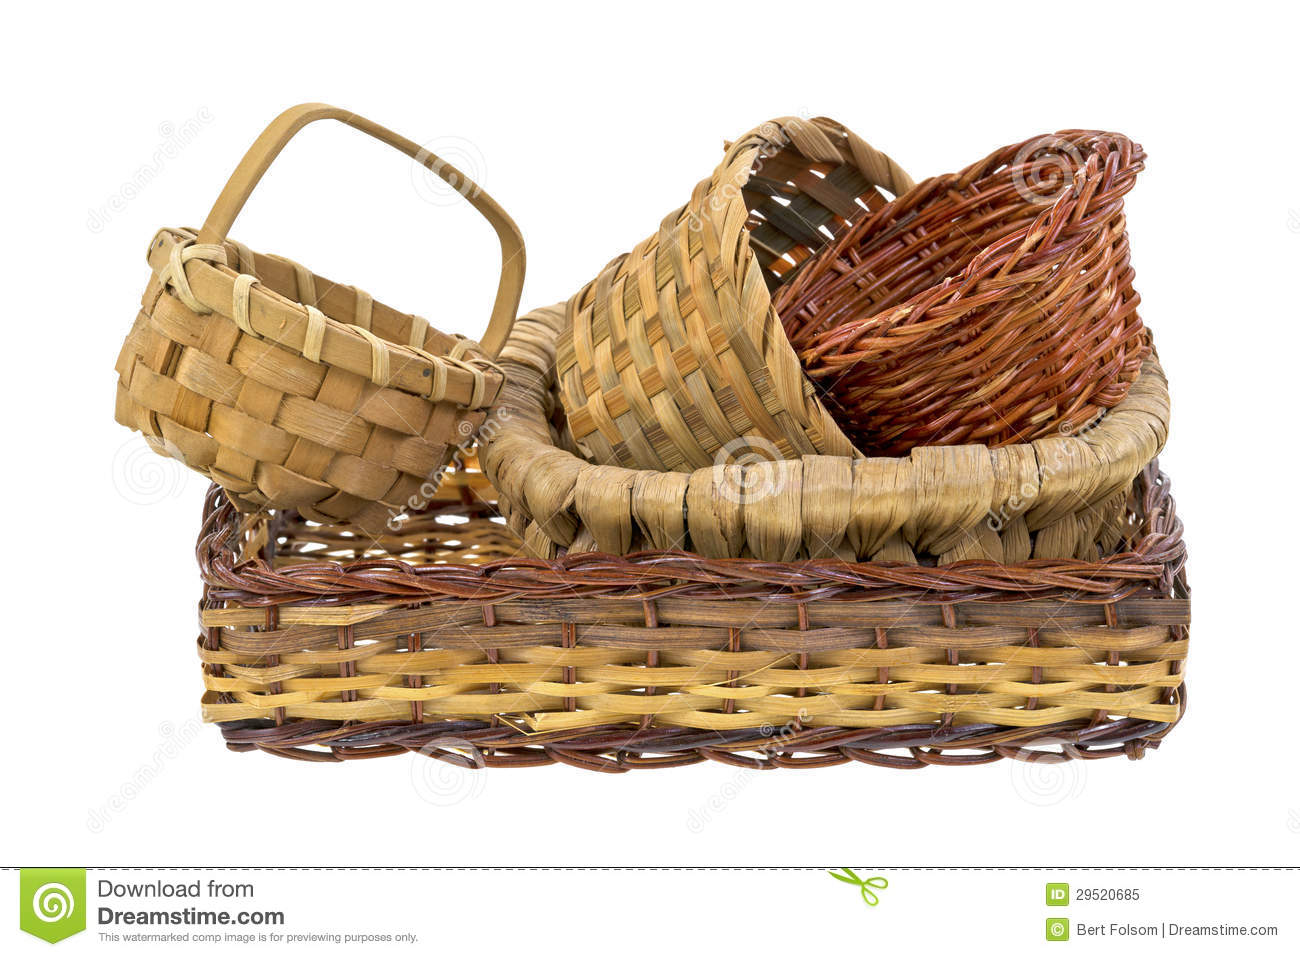 Animal Wicker Hamper Wicker Baskets Royalty Free Stock Photo Image 29520685